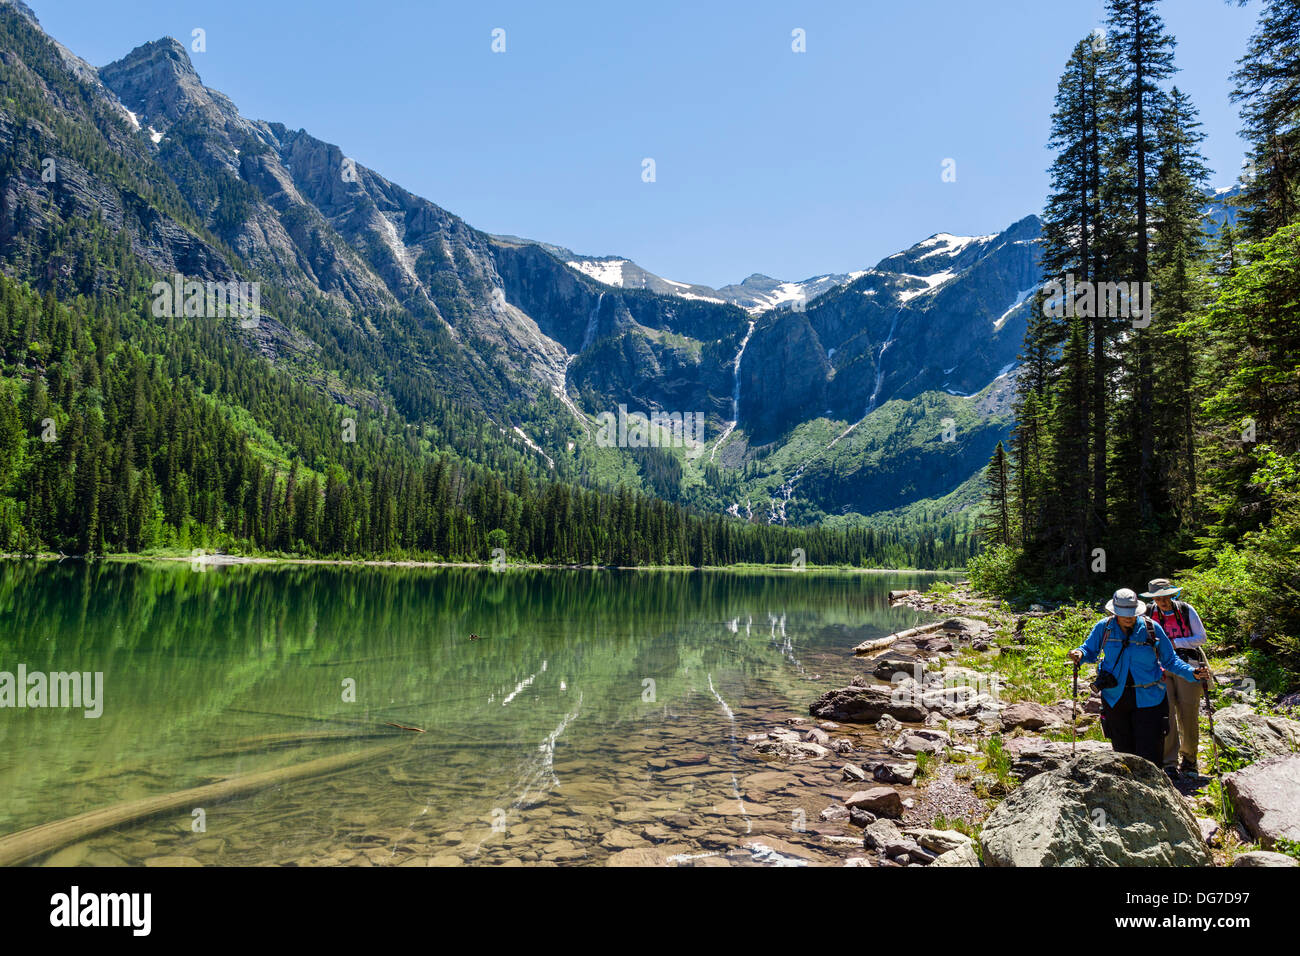 Hikers on the shore of Avalanche Lake, Glacier National Park, Montana, USA - Stock Image